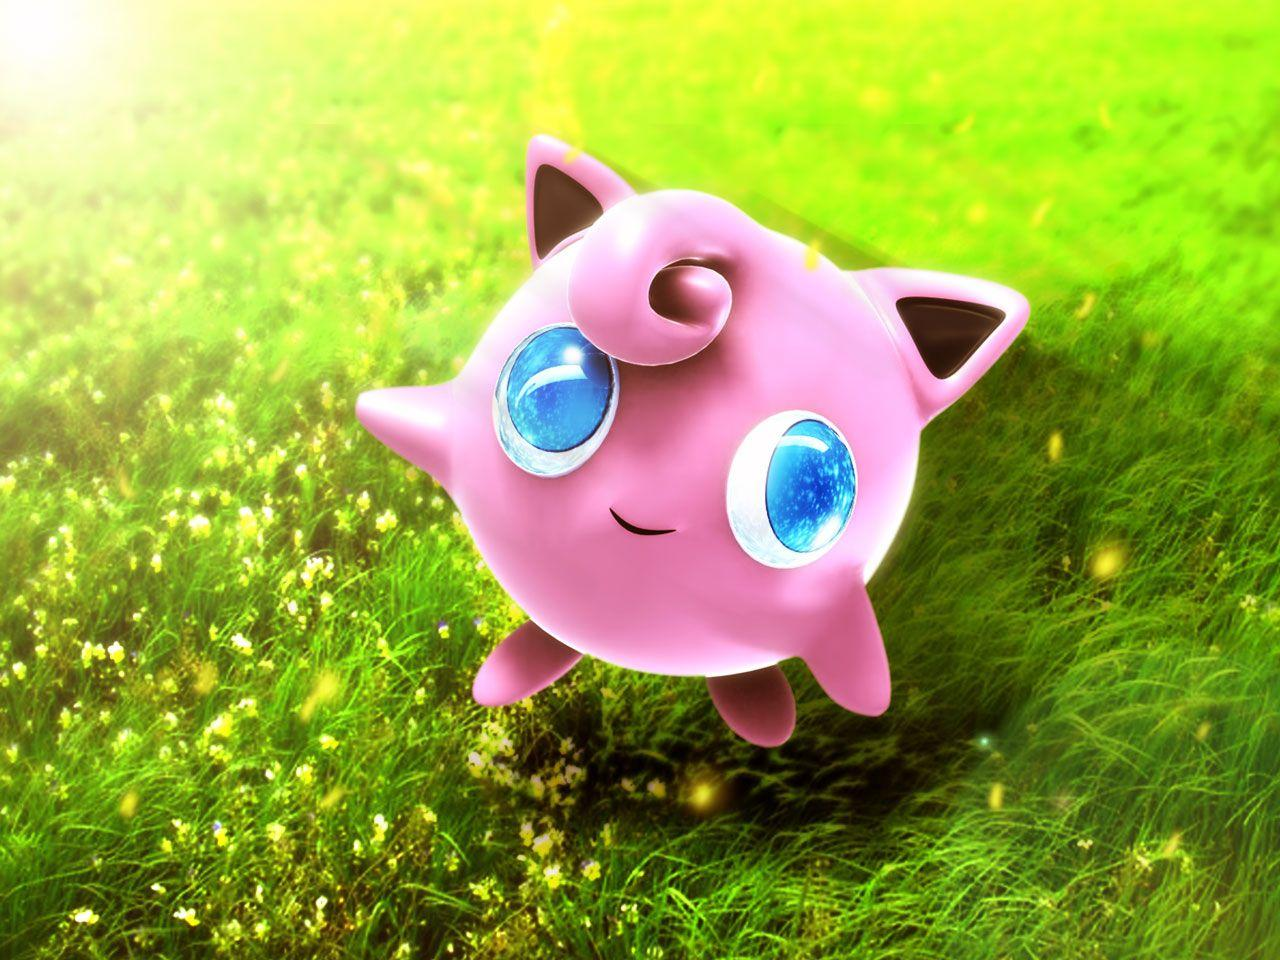 Jigglypuff Wallpapers, Adorable HDQ Backgrounds of Jigglypuff, 48